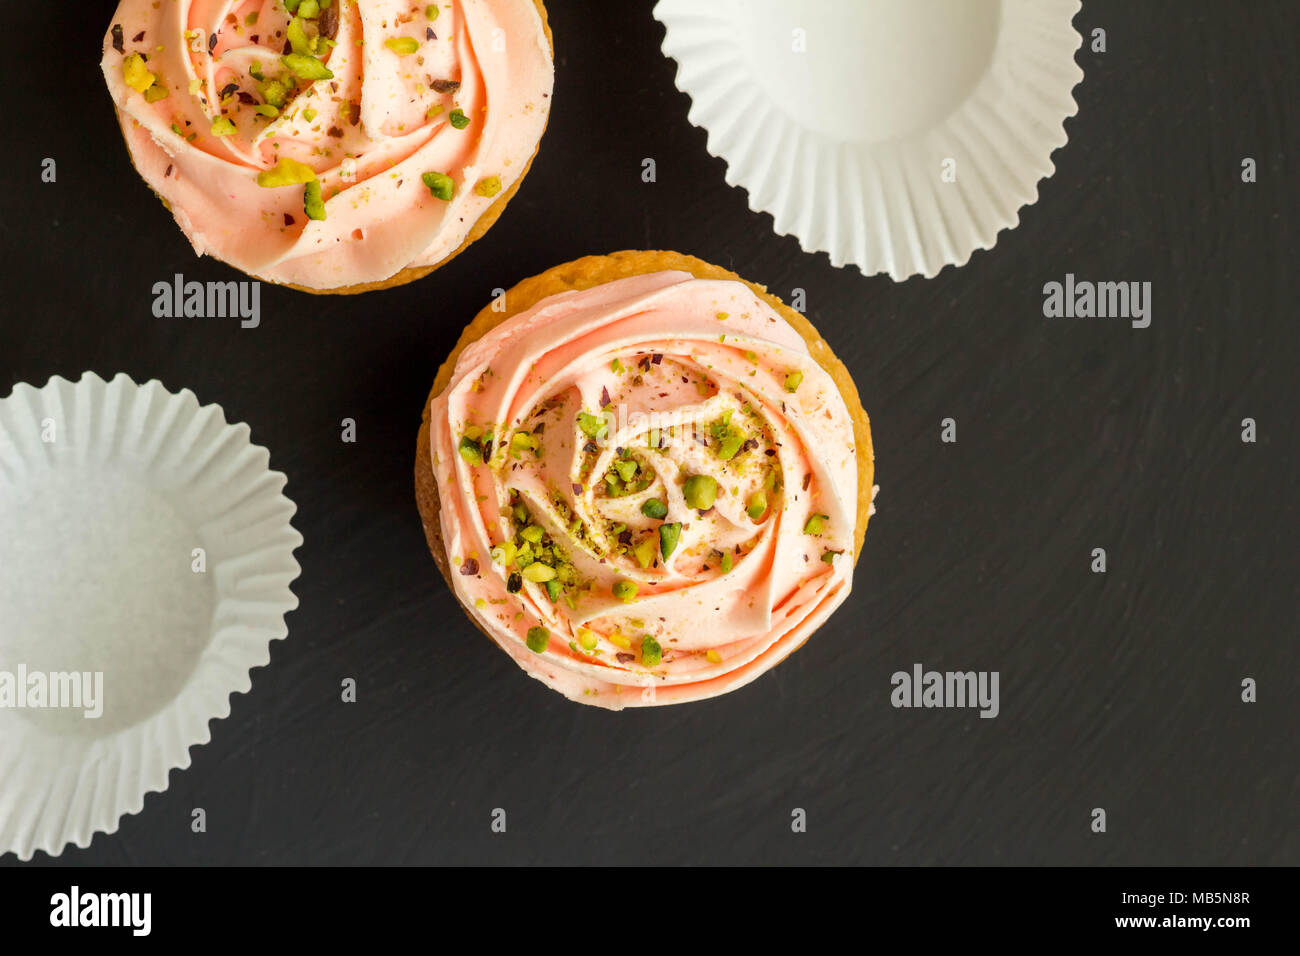 Two pink cup cakes close up on black background - Top view photo with space for text - Stock Image